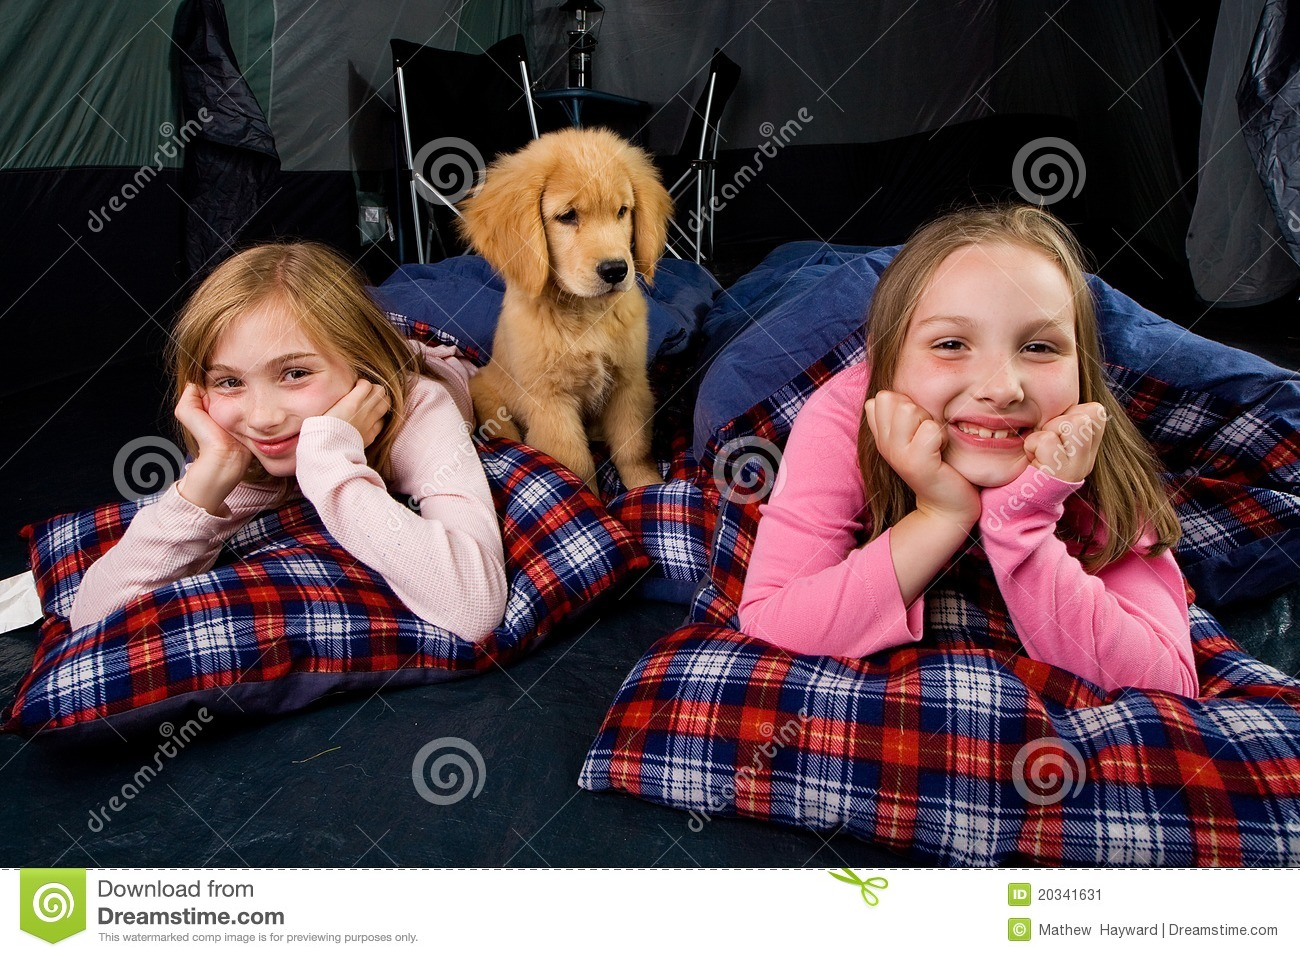 Kids and a puppy in a tent